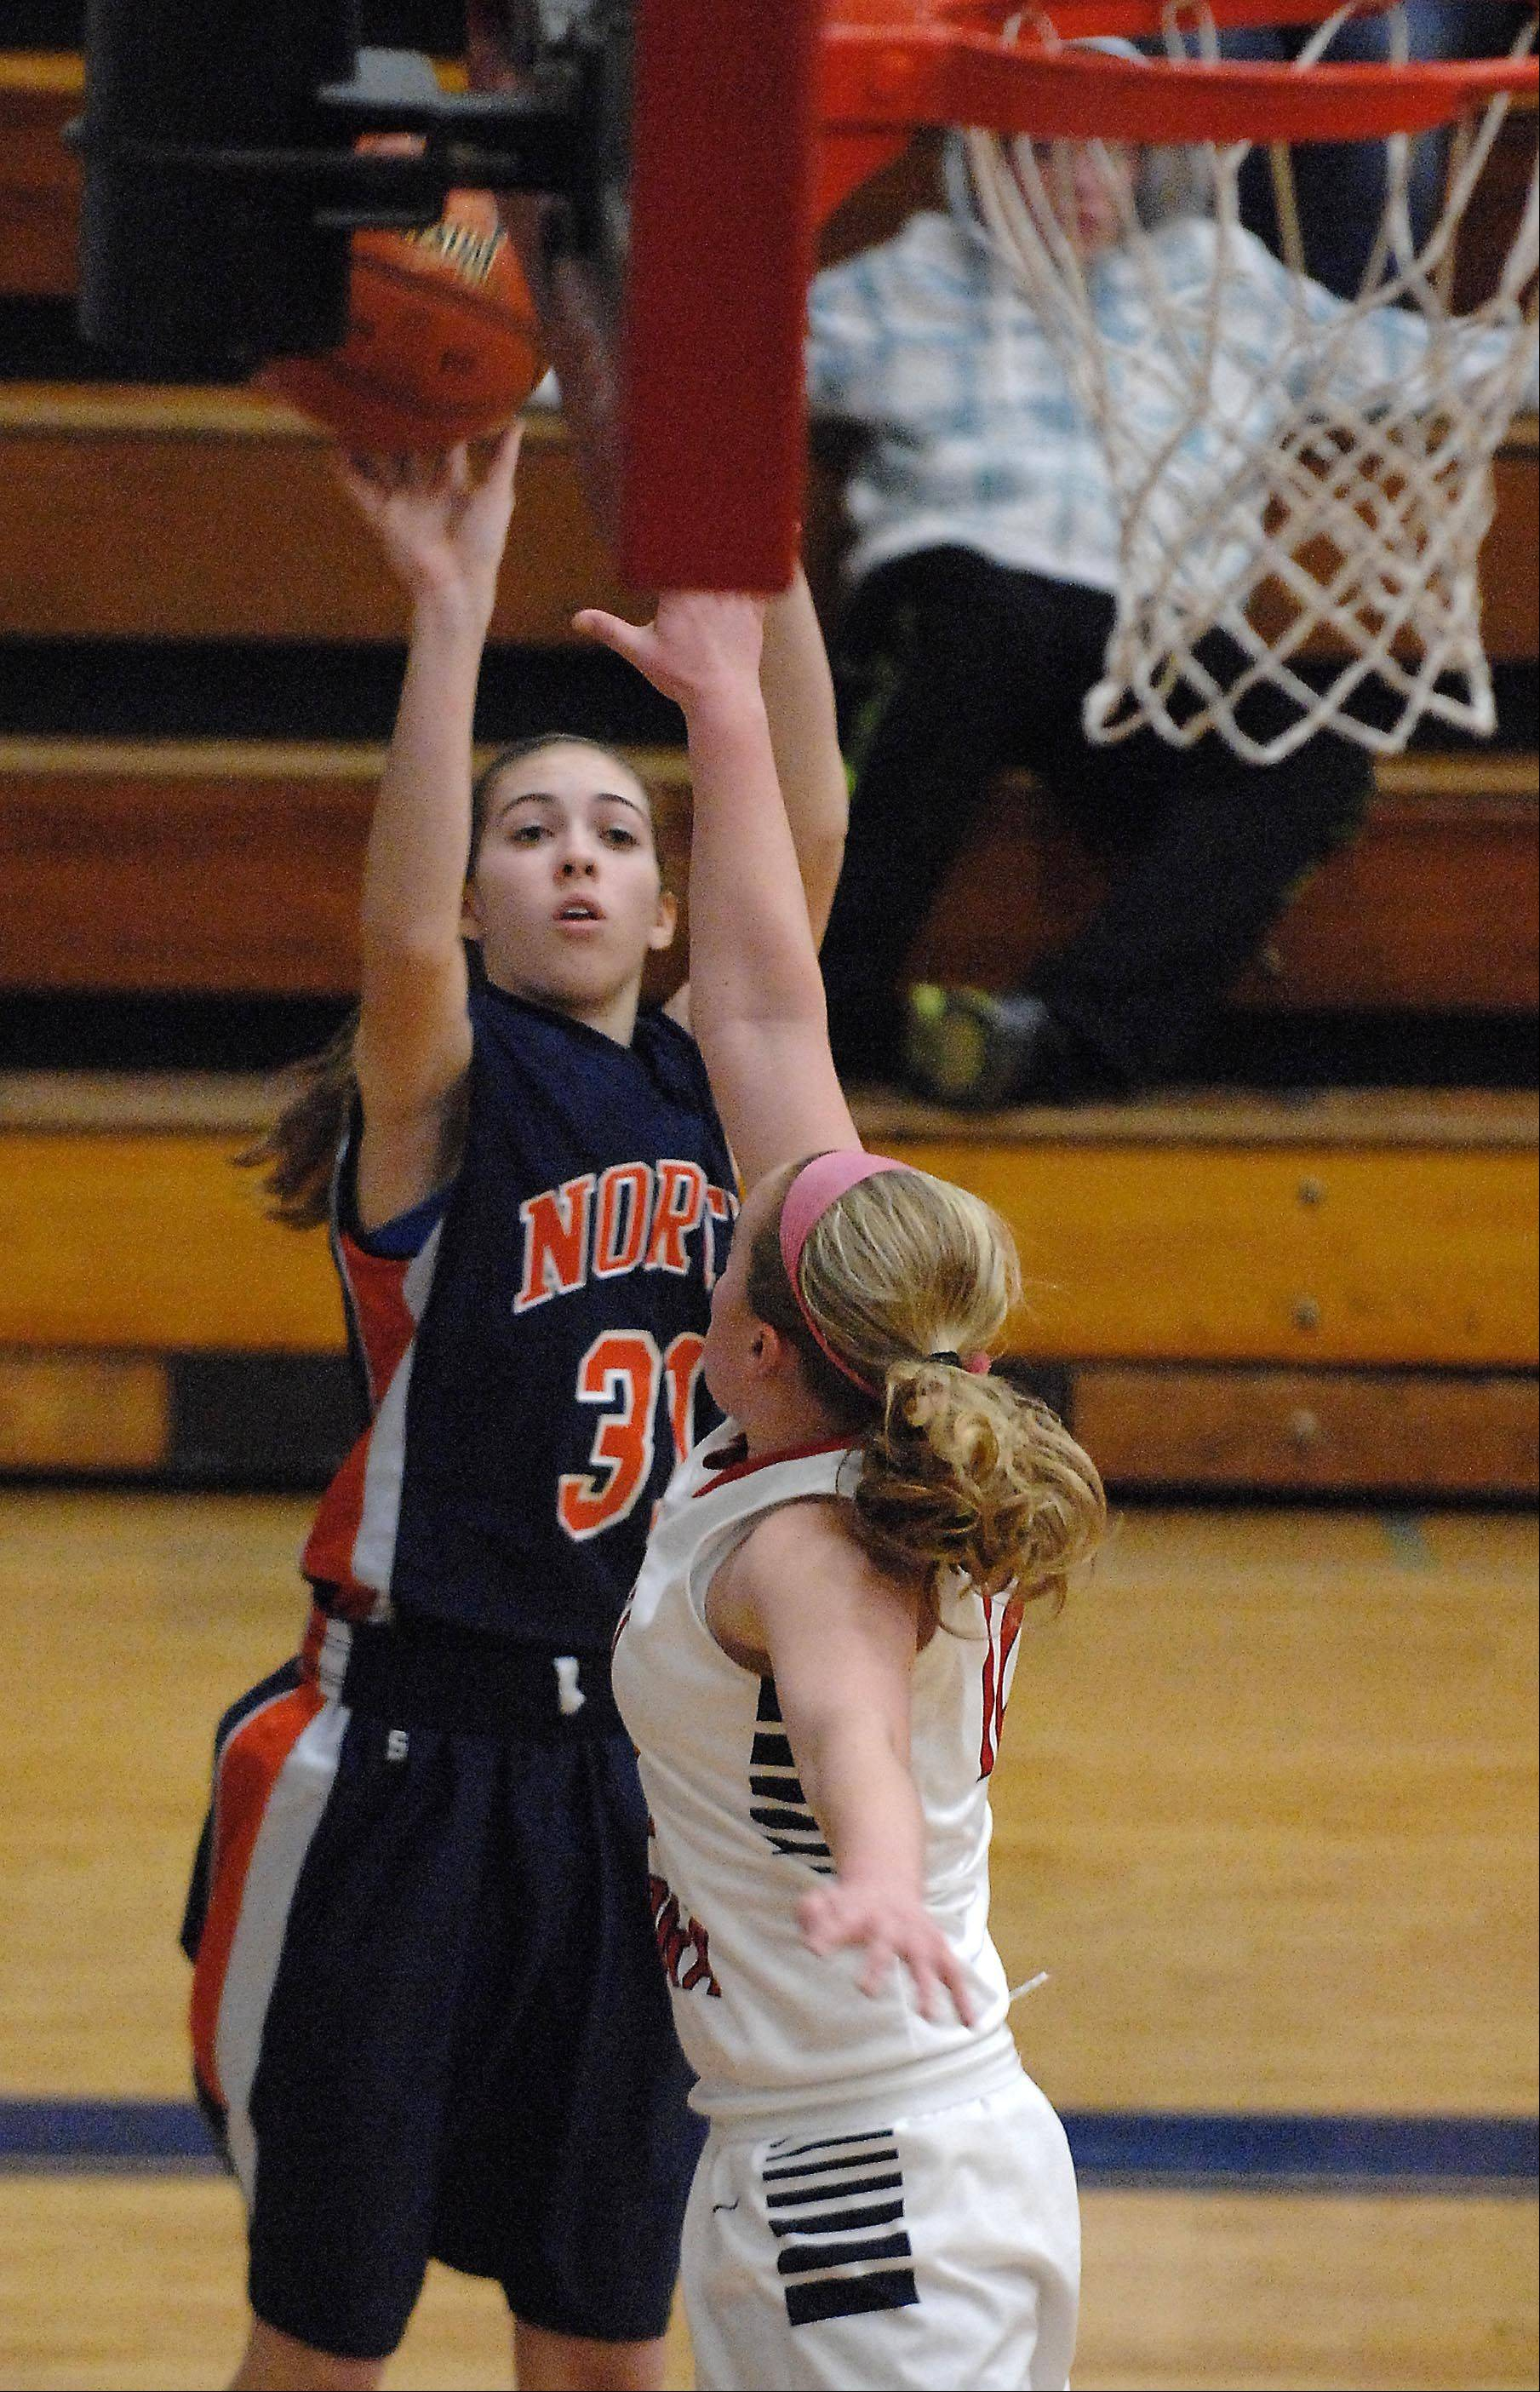 Images from the Naperville North vs. West Aurora girls basketball game Thursday, January 31, 2013.